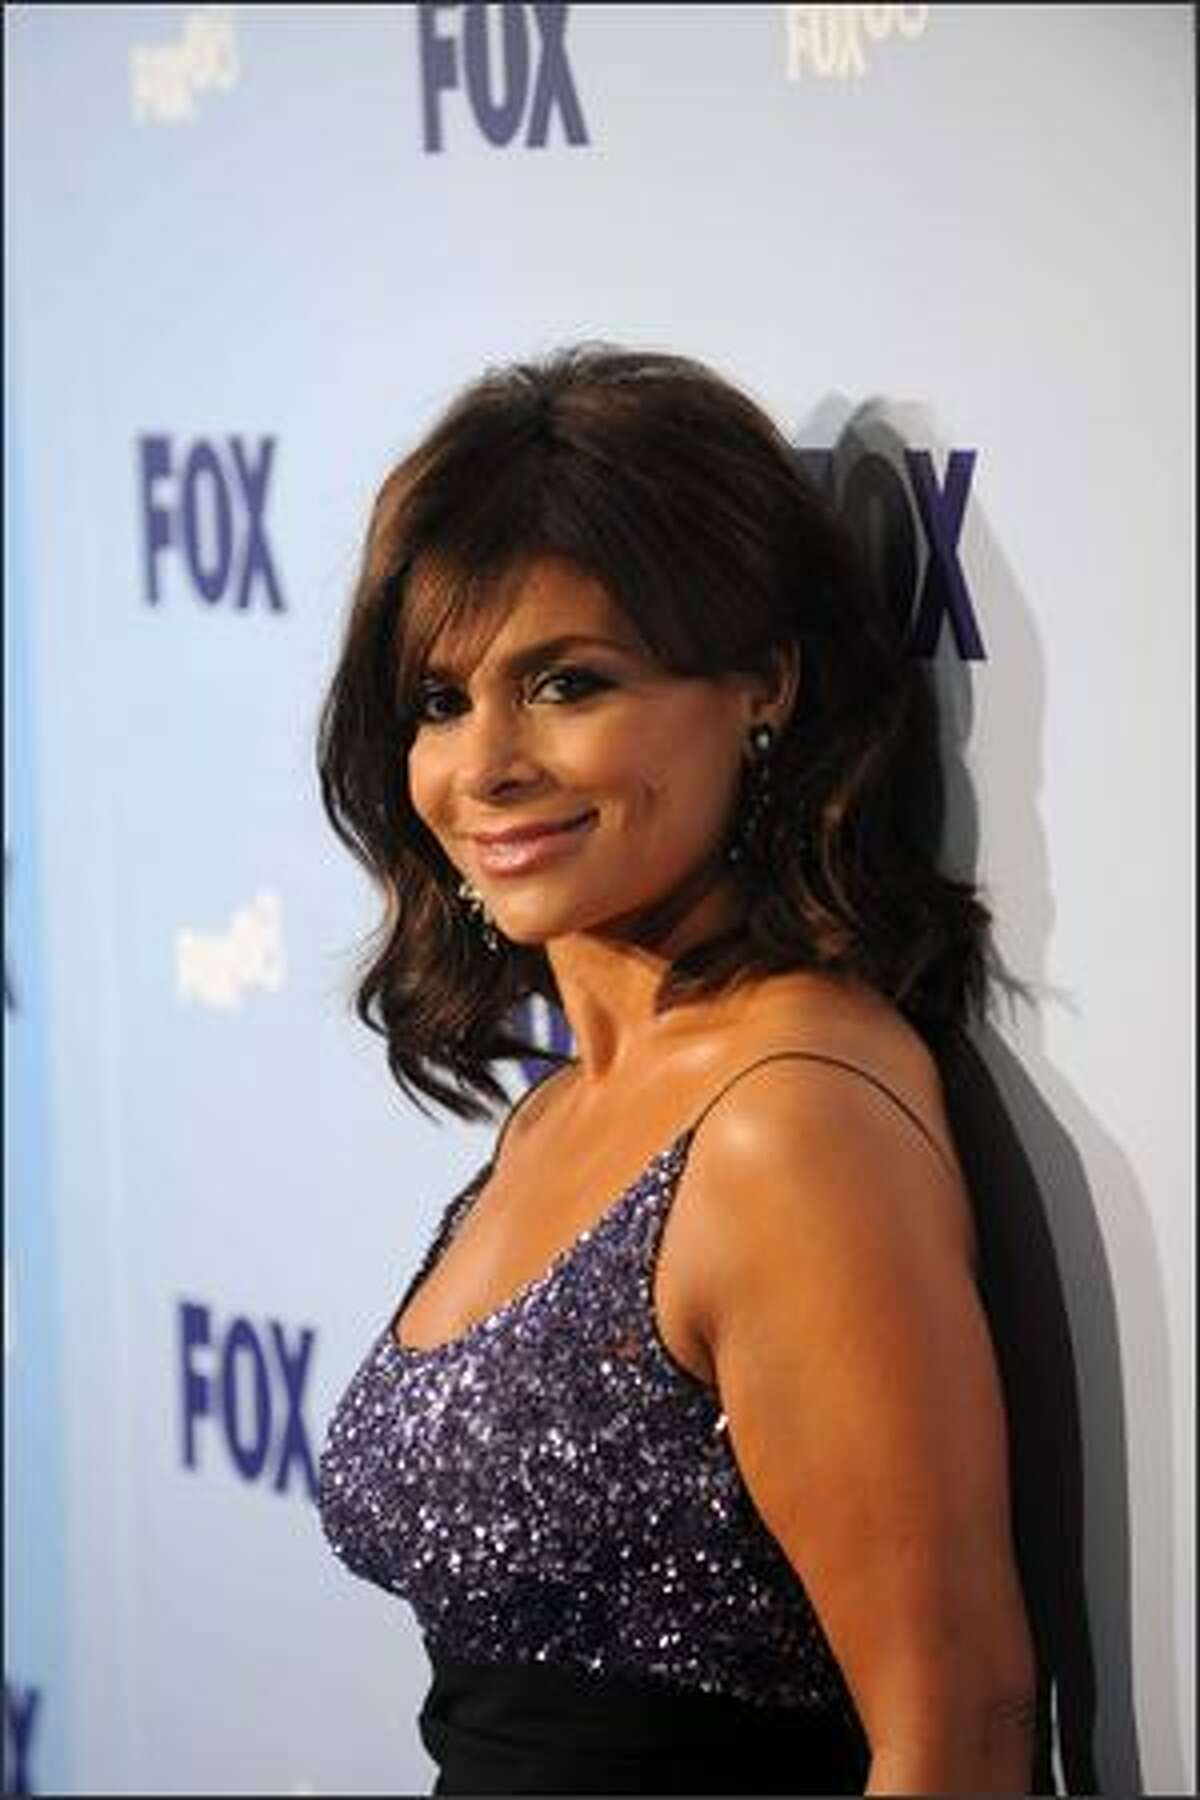 Television personality Paula Abdul attends the 2008 FOX Upfront at the Wollman Rink in Central Park on Thursday in New York City.